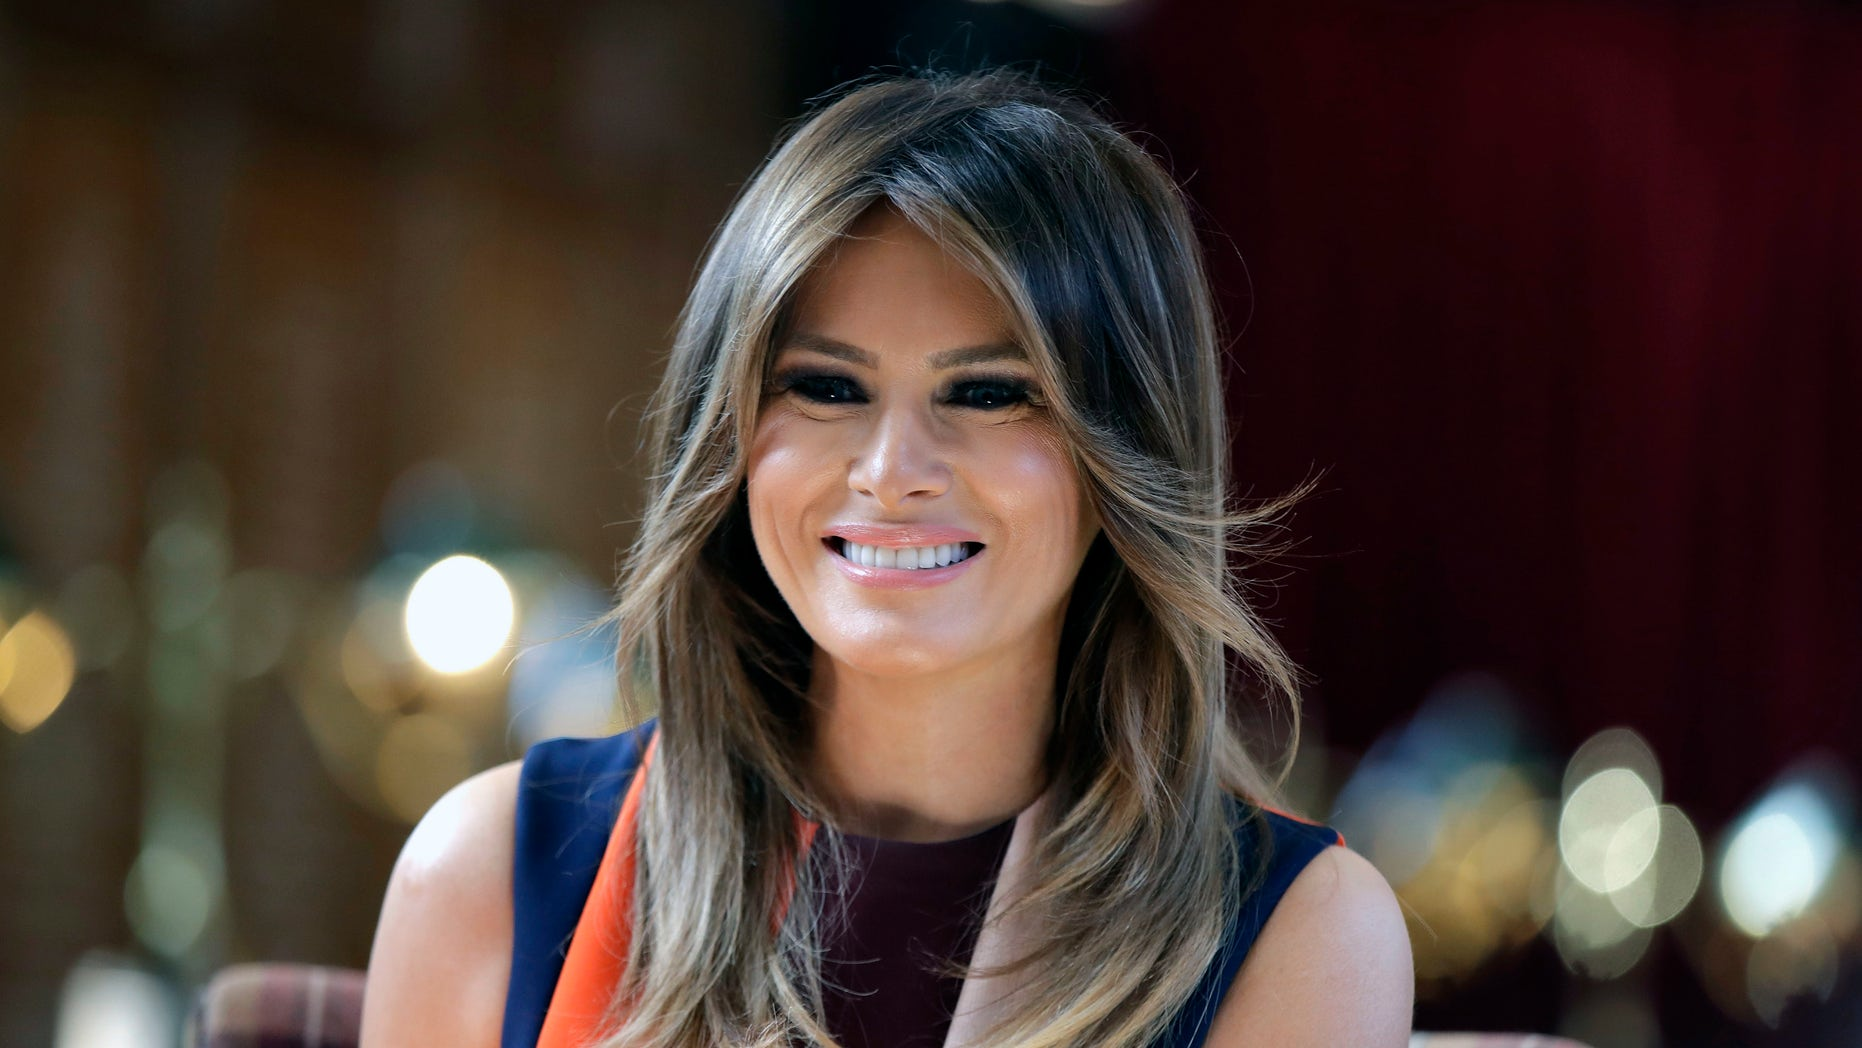 Melania Trump's plane lands safely after mechanical issue